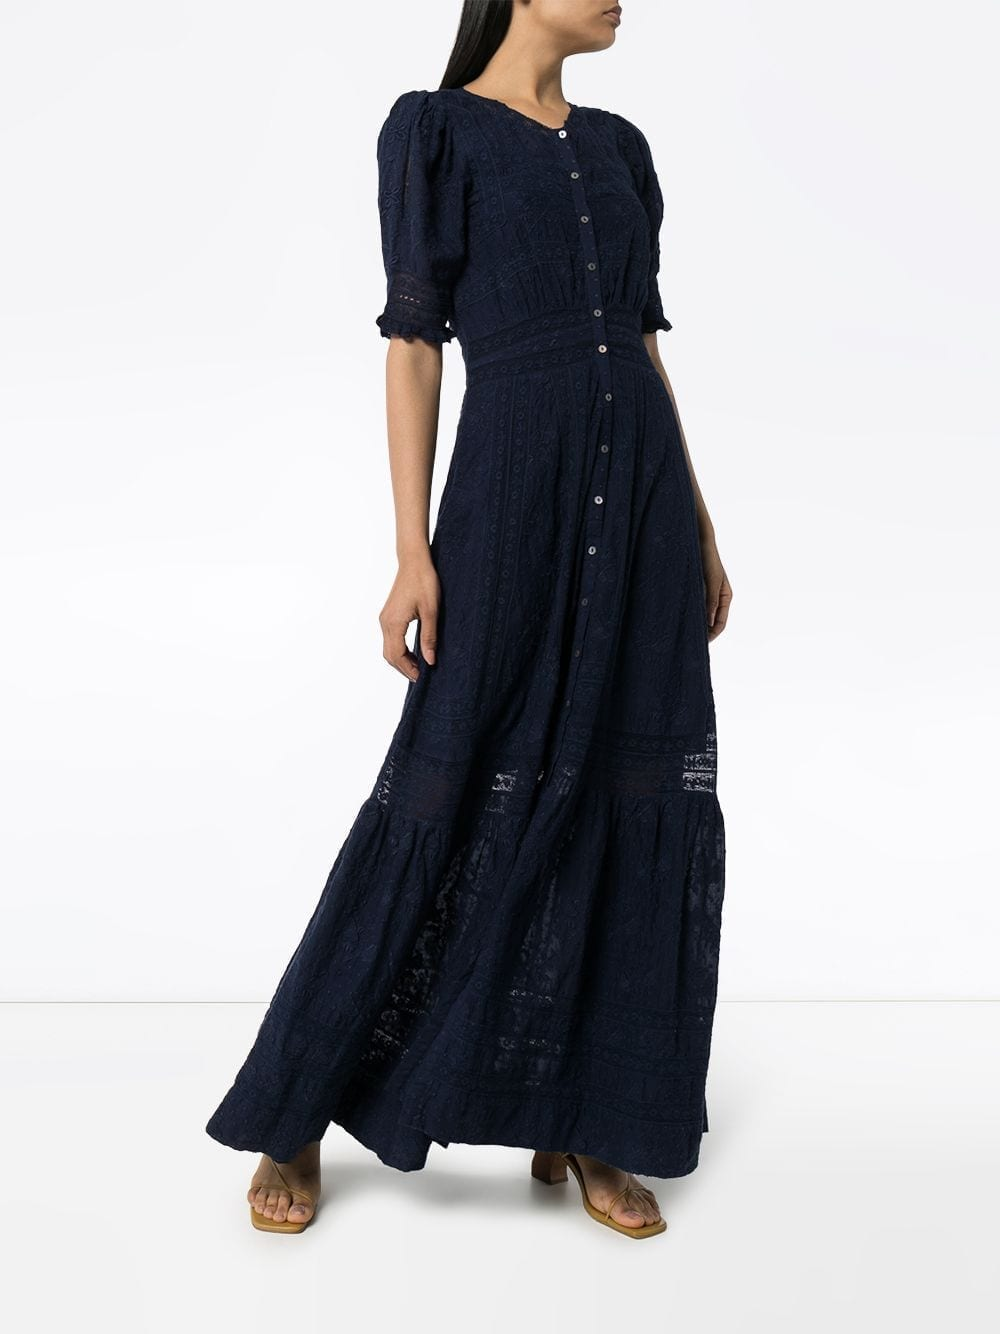 LOVESHACKFANCY Minka Maxi Dress